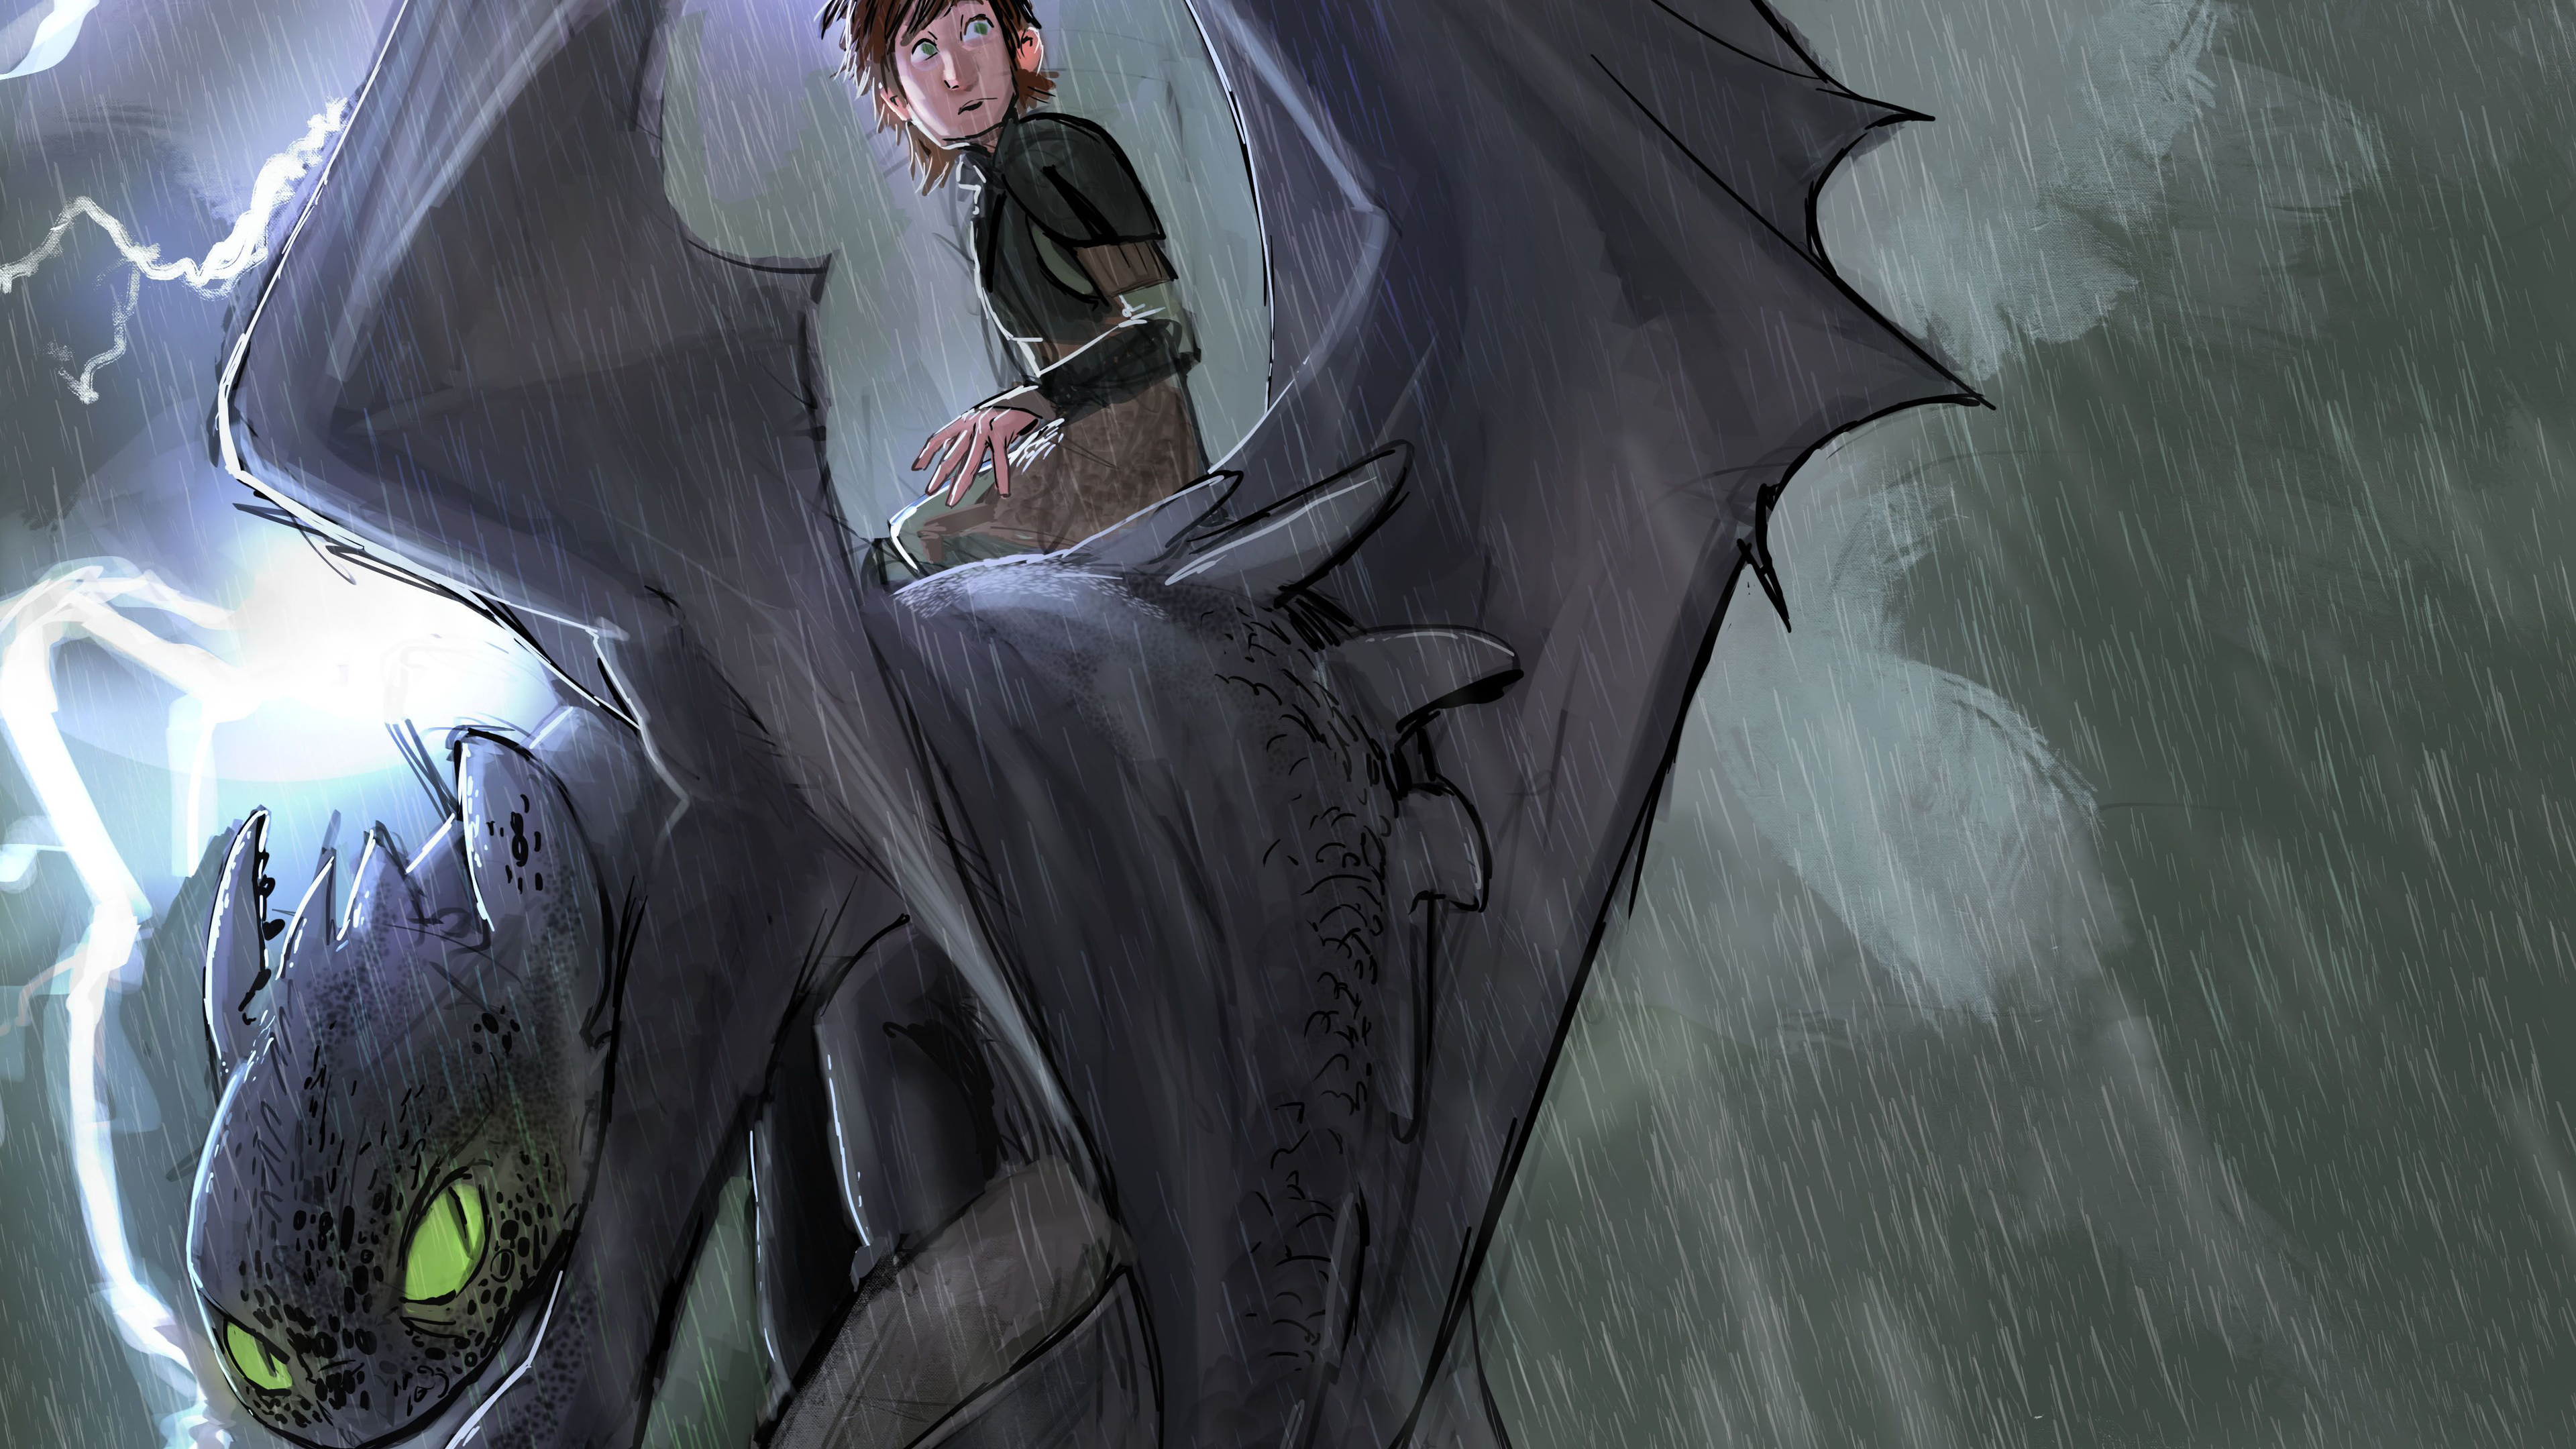 how to train your dragon into hidden world sketch art 4k 1555208567 - How To Train Your Dragon Into Hidden World Sketch Art 4k - night fury wallpapers, movies wallpapers, how to train your dragon wallpapers, how to train your dragon the hidden world wallpapers, how to train your dragon 3 wallpapers, artwork wallpapers, animated movies wallpapers, 2019 movies wallpapers